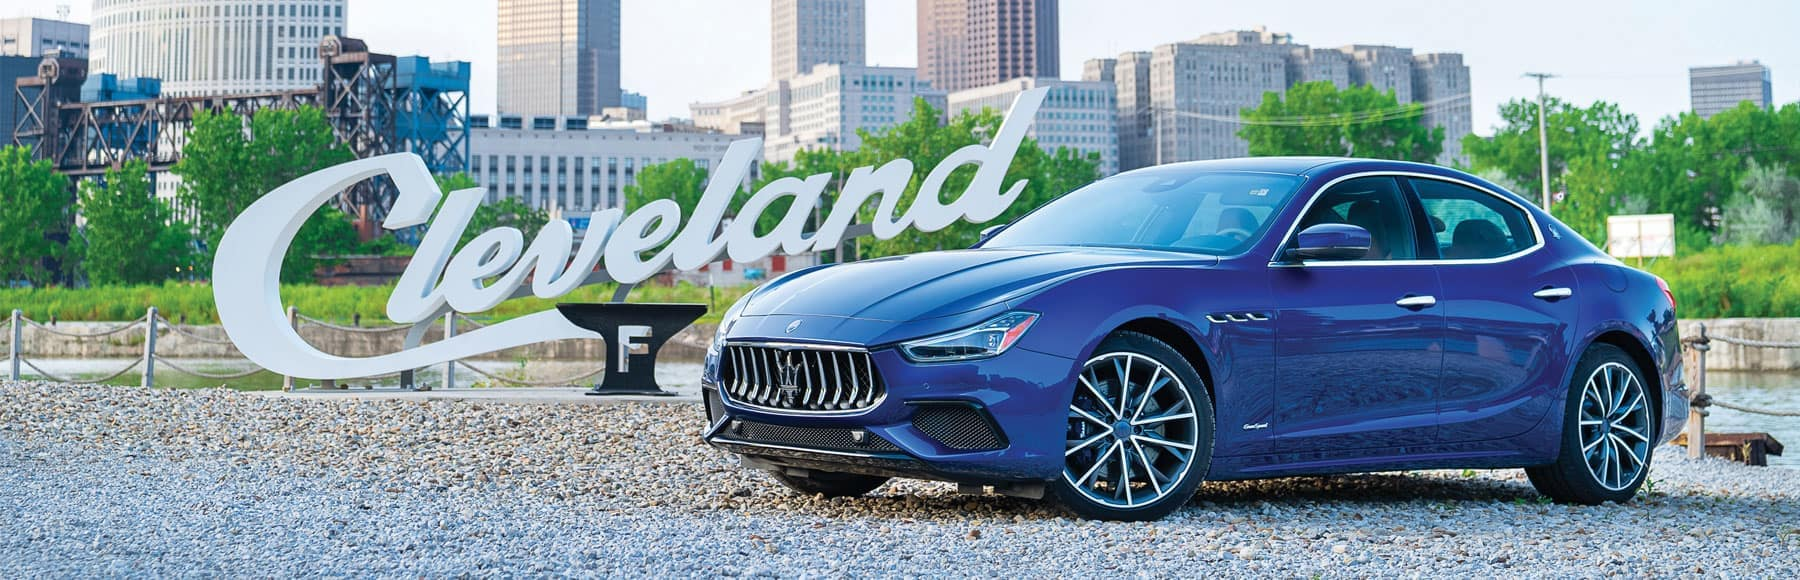 Maserati_HomePage-Hero_1800x580_Sep2020